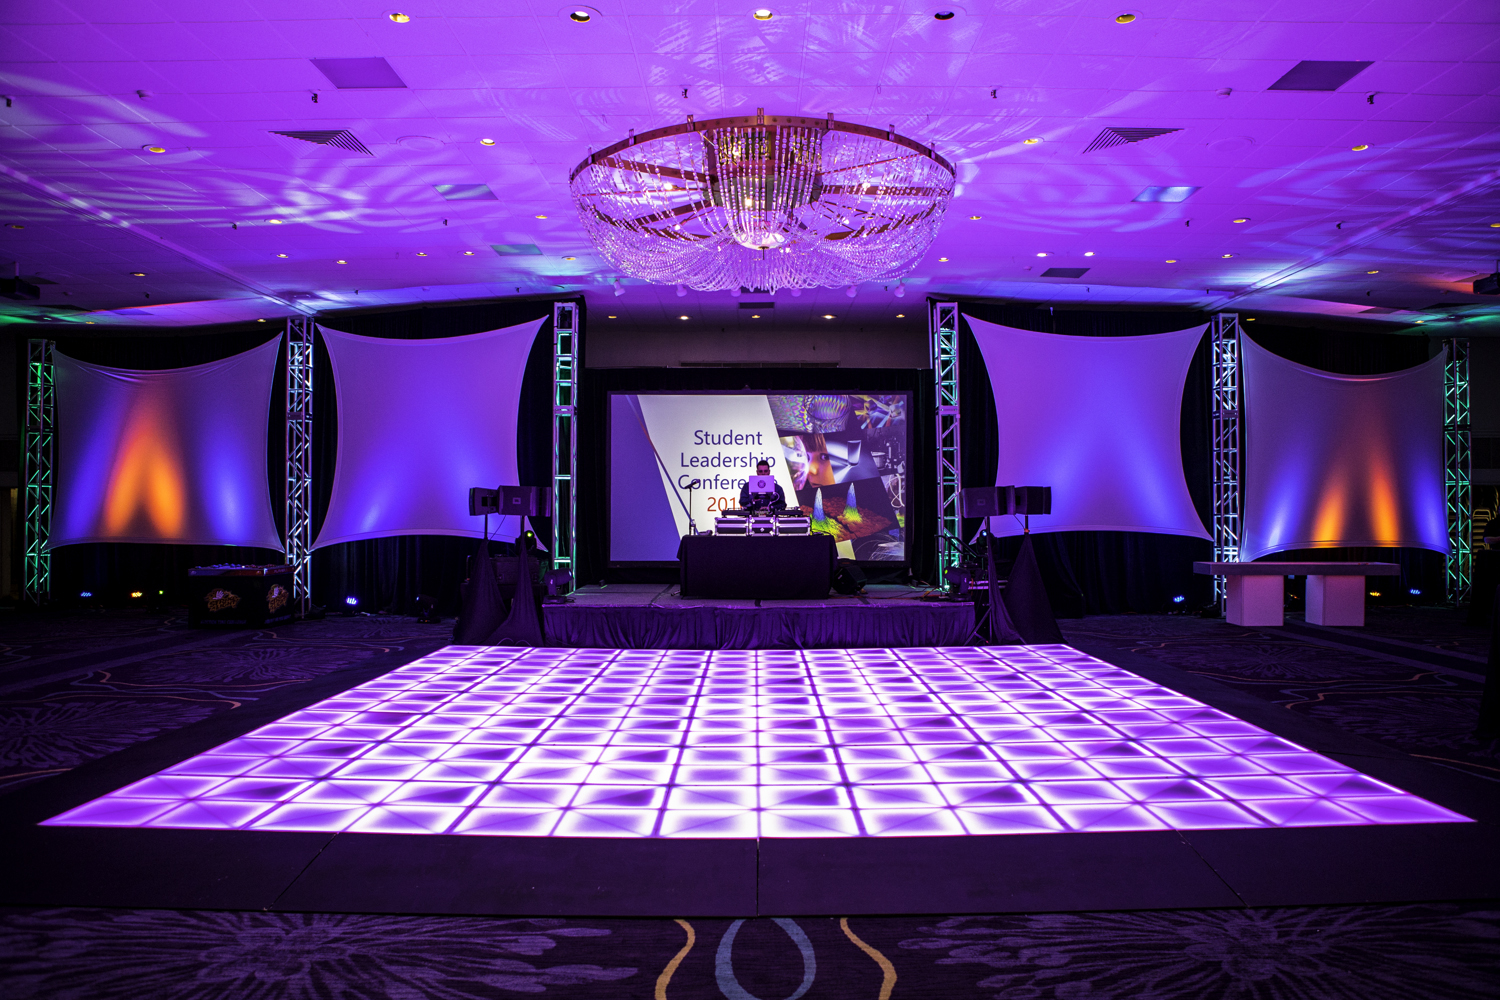 LED Dance Floor at Holiday Inn Downtown